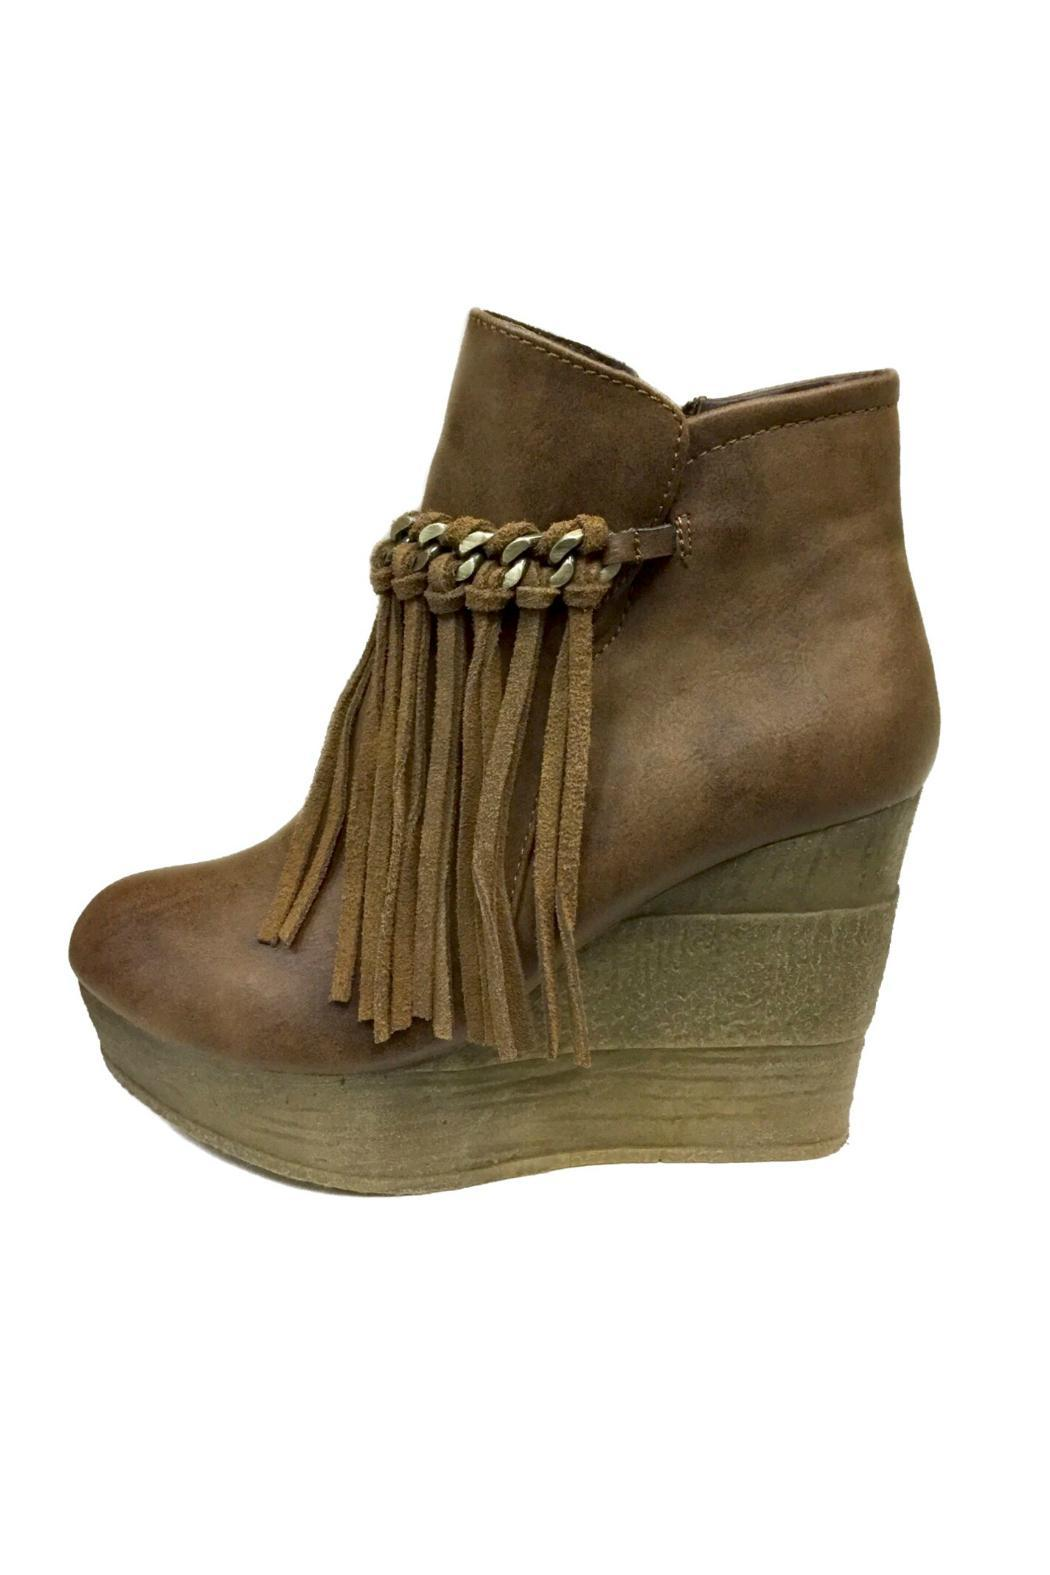 343eb59ed80 Sbicca Fringe Wedge Bootie from Texas by Marta s Boutique — Shoptiques